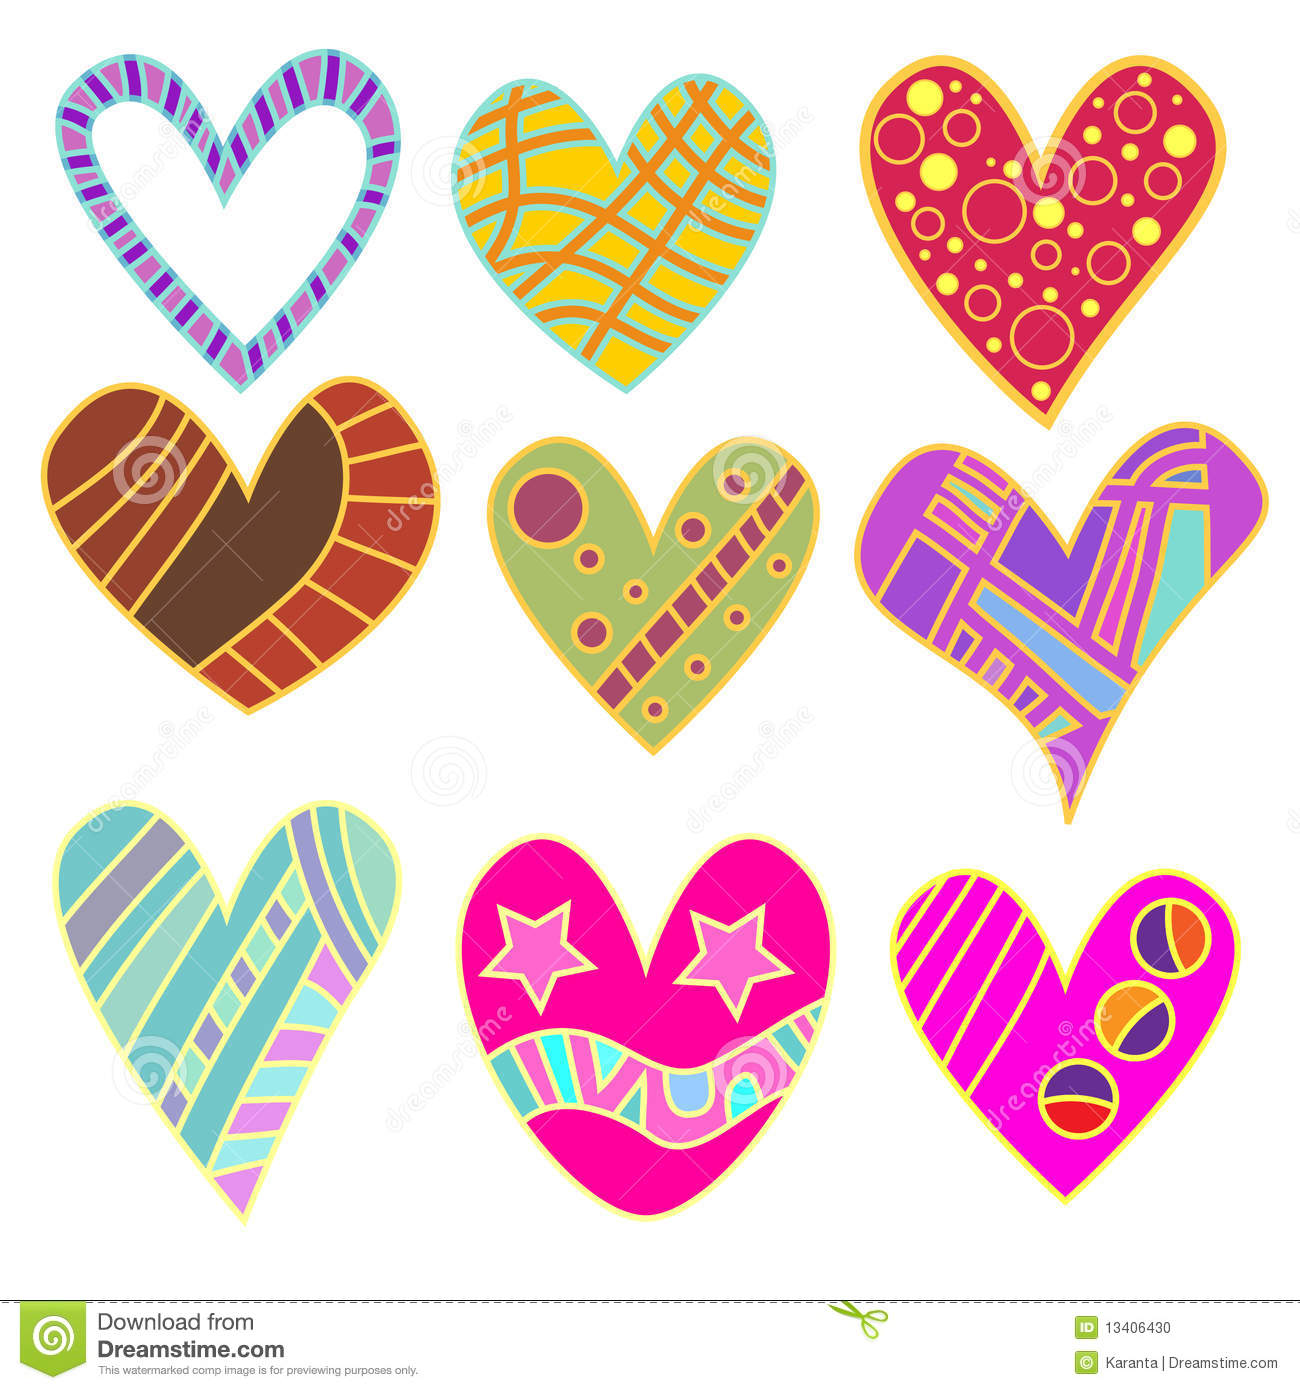 Whimsical Cupcake Clipart Whimsical Heart Collection